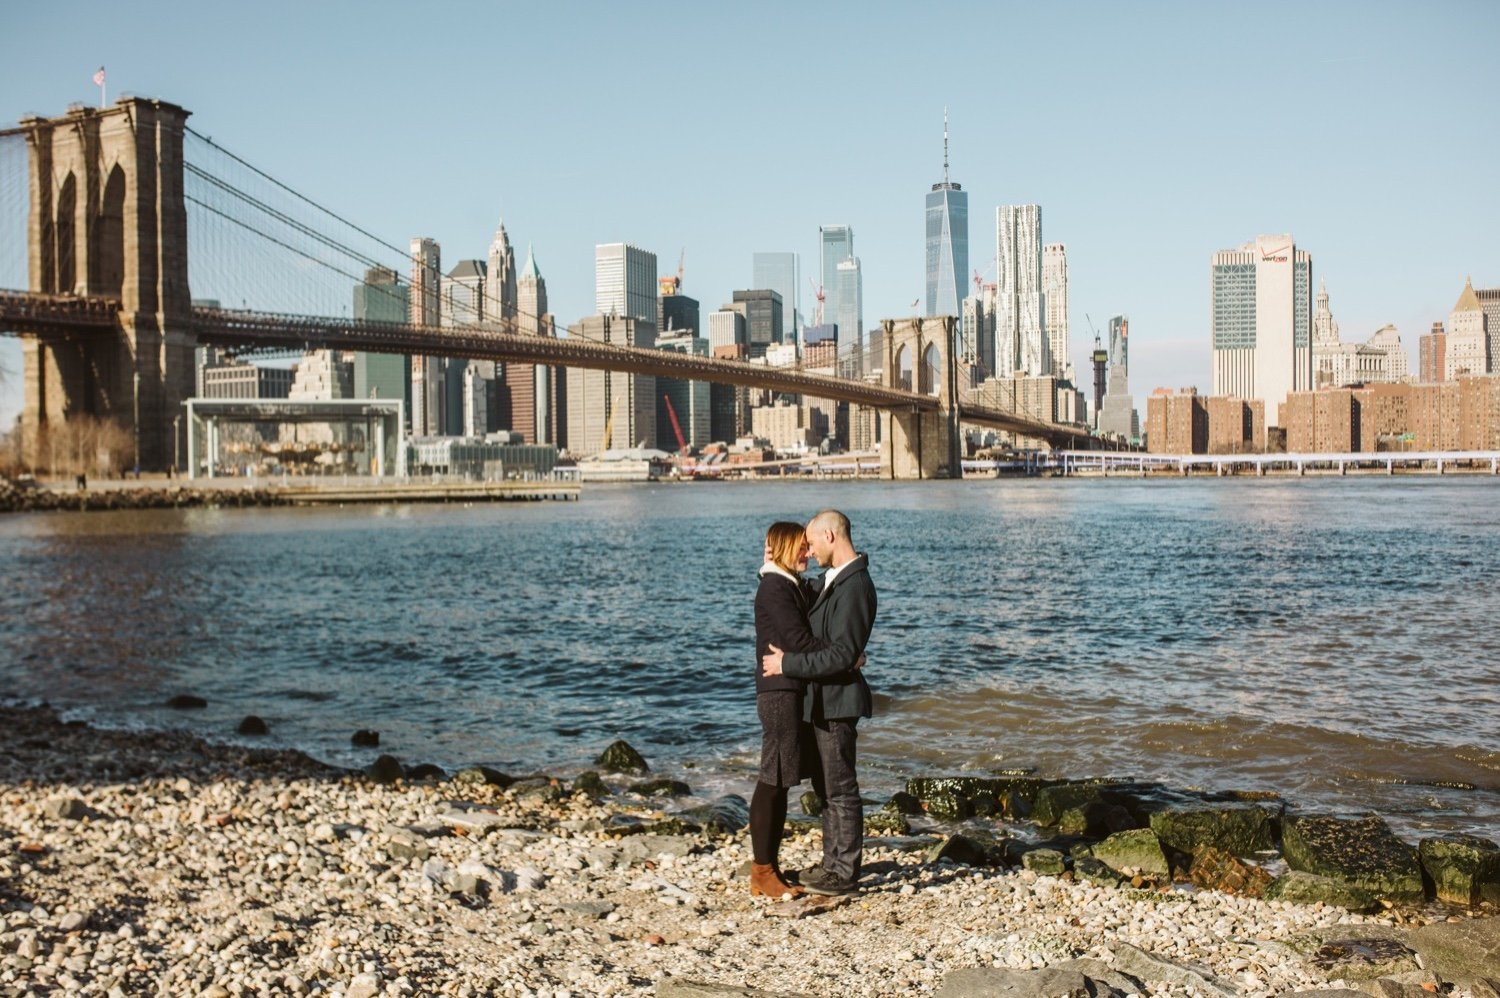 DUMBO Engagement Session, DUMBO Brooklyn Engagement Photographer, The coolest places in brooklyn for an engagement session, Best places to take your engagement photos in brooklyn, Brooklyn NY Wedding Photographer, Wedding Photographers in Brooklyn, NYC Wedding Photographers on the Knot, Luxury NYC Wedding Photographers, Natura Collective, Sea Shack Photo and Films, Outside engagement session inspiration photos, Pinterest poses for engagement sessions, NYC Skyline engagement session photos, Brooklyn Wedding Videographer